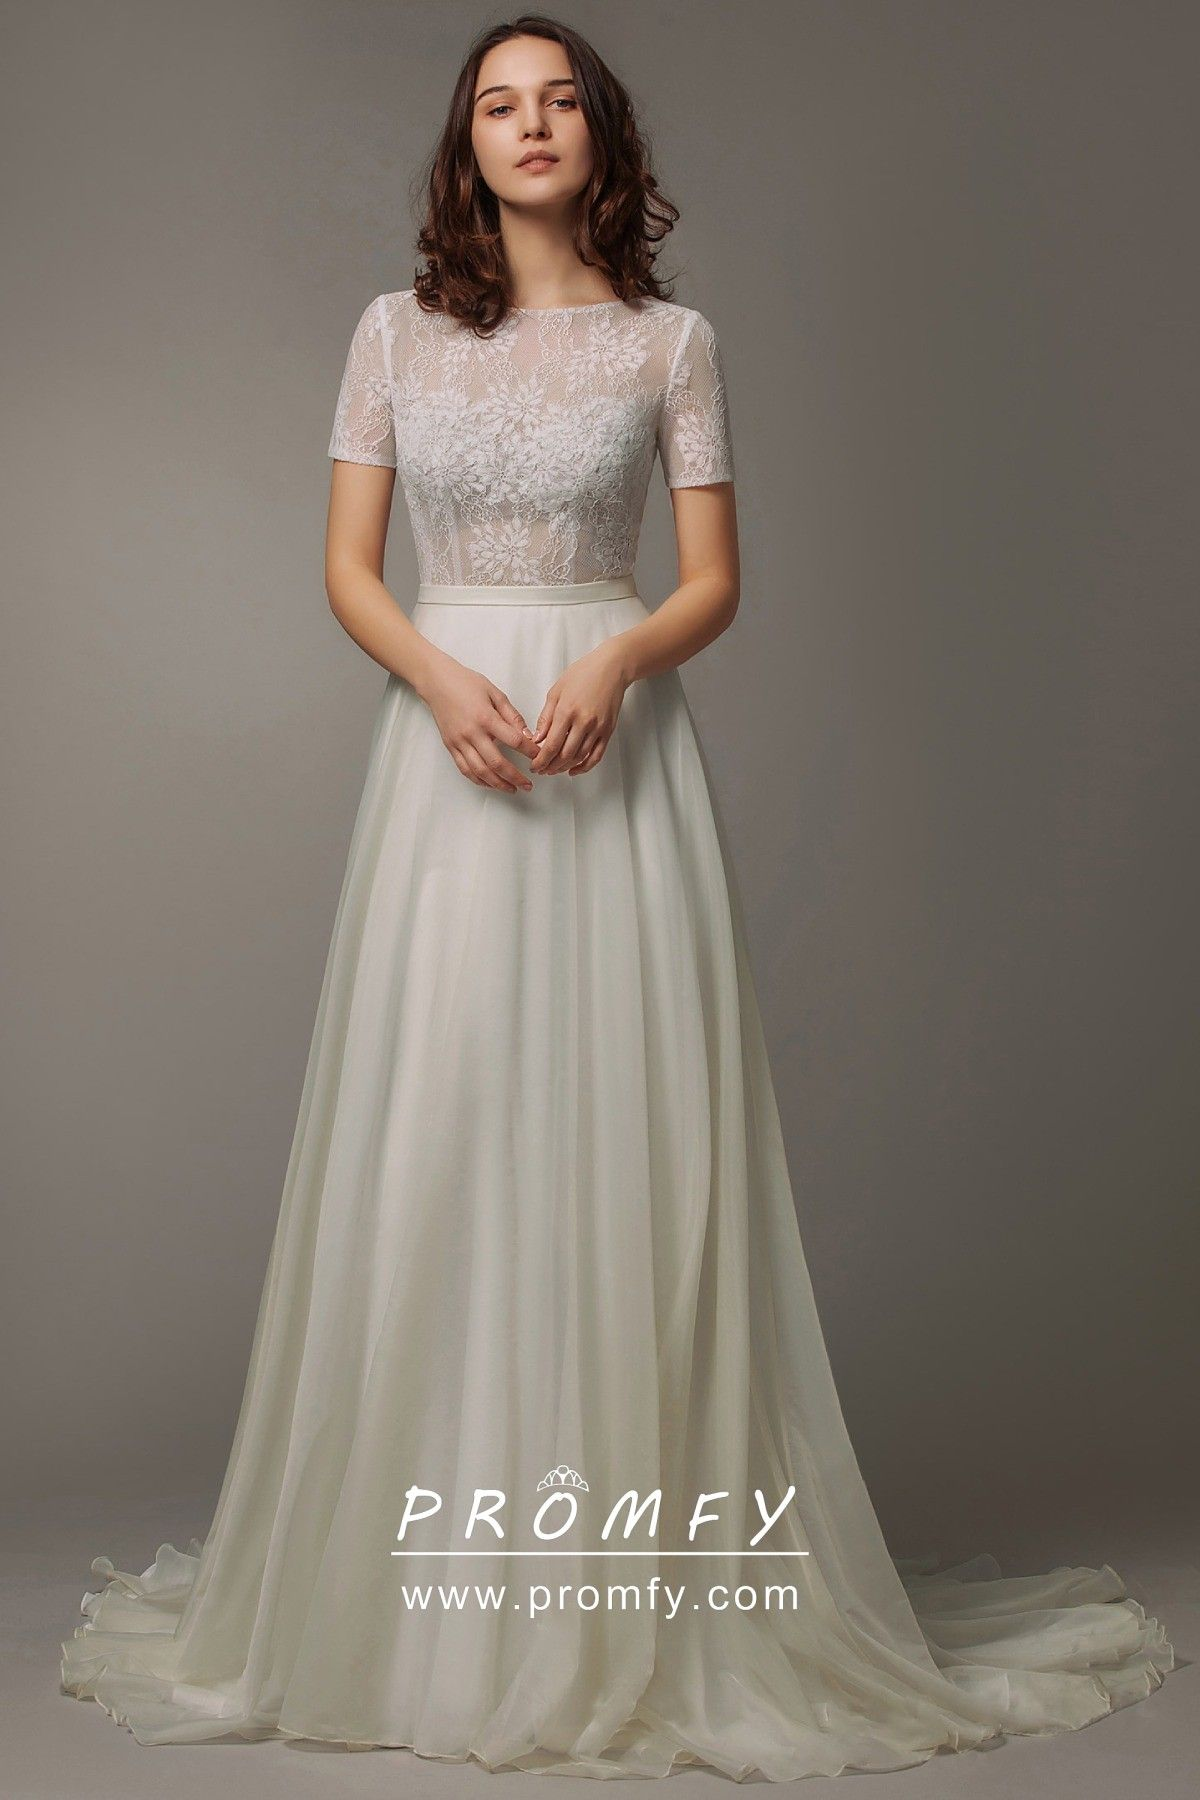 See Through Lace Top Modern A Line Wedding Dress Short Lace Wedding Dress A Line Wedding Dress Wedding Dresses [ 1800 x 1200 Pixel ]